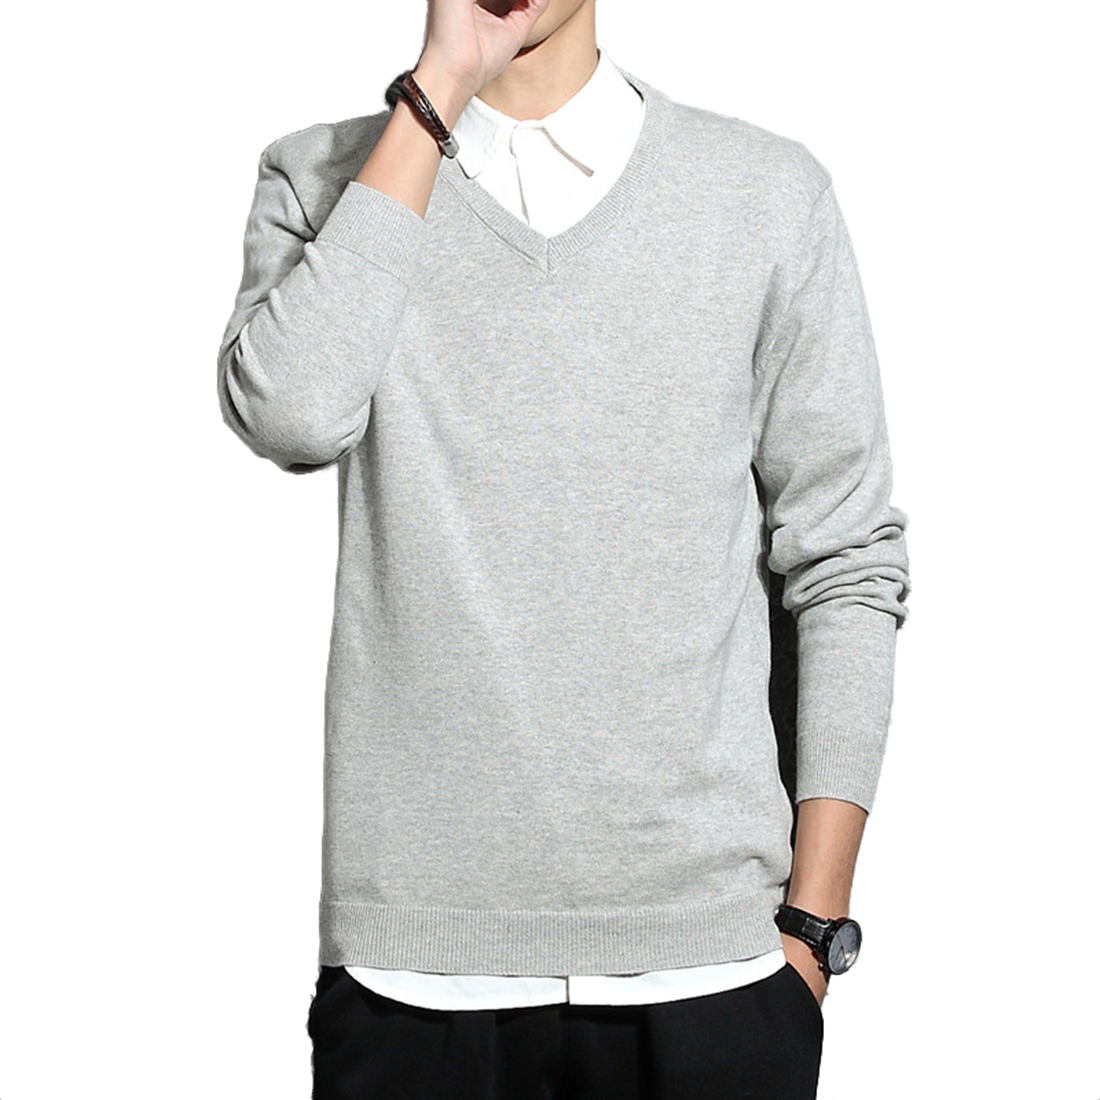 Knitted Sweater Outwear Pullover Pull-Clothing V-Neck Long-Sleeve Winter Mens Chandail